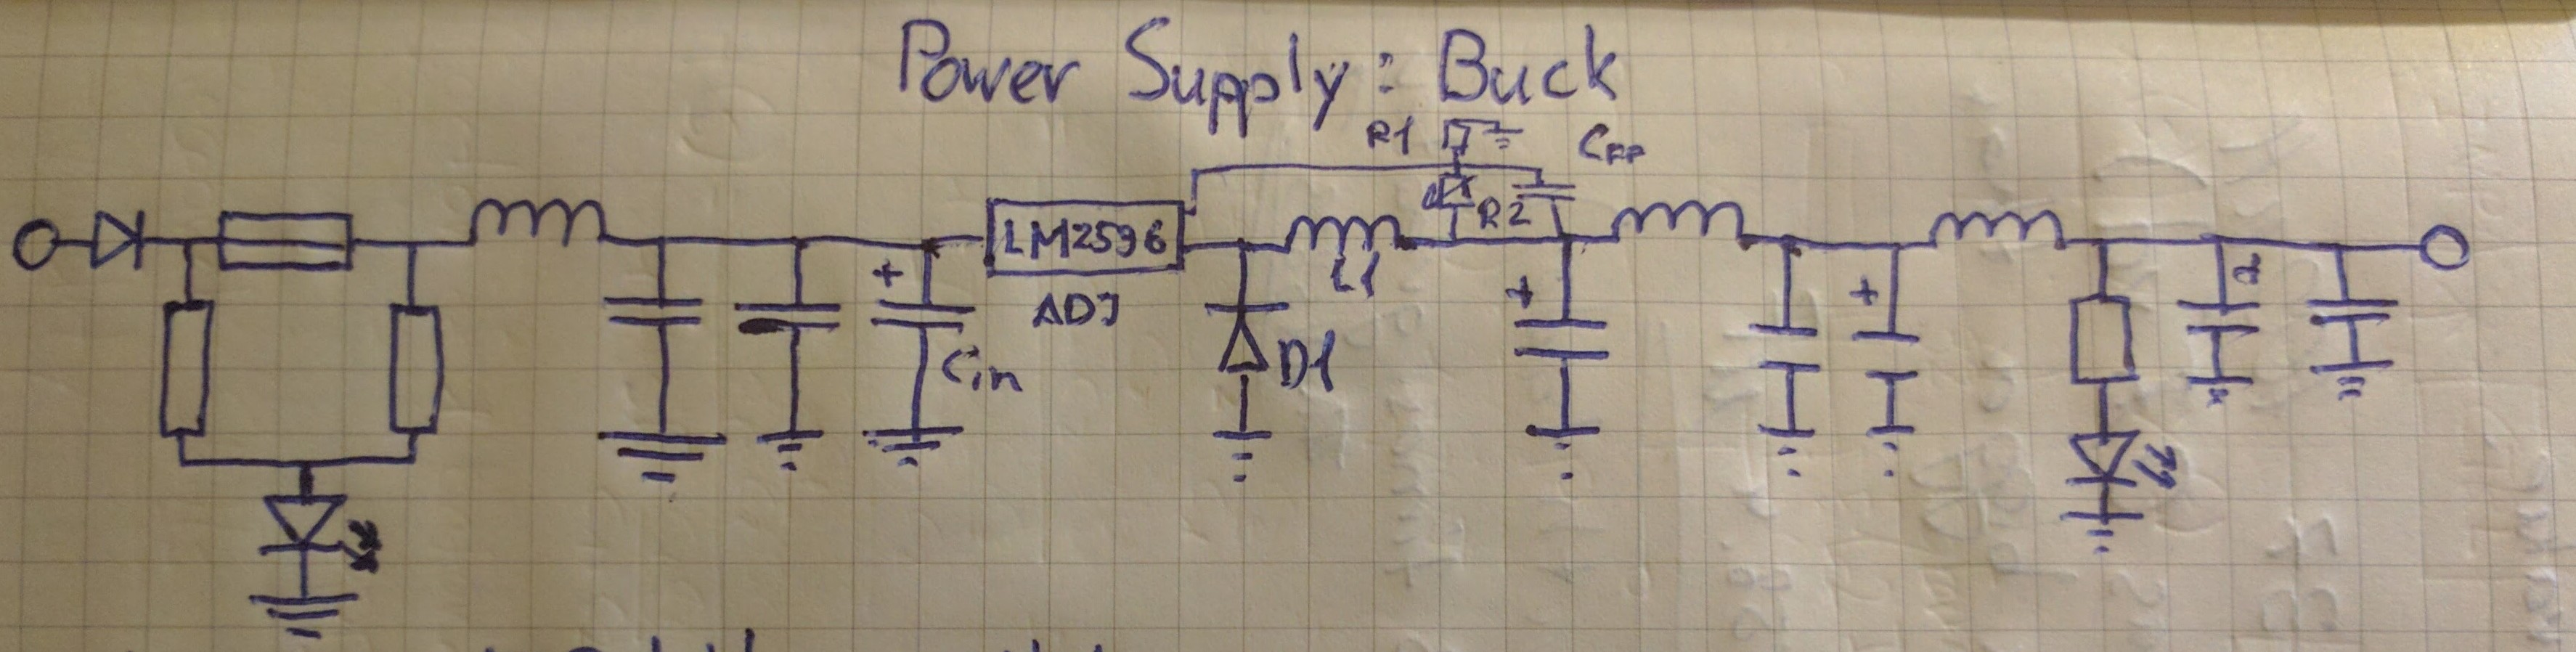 Rfid Tuned Circuit Value Switching Electrical Engineering Stack